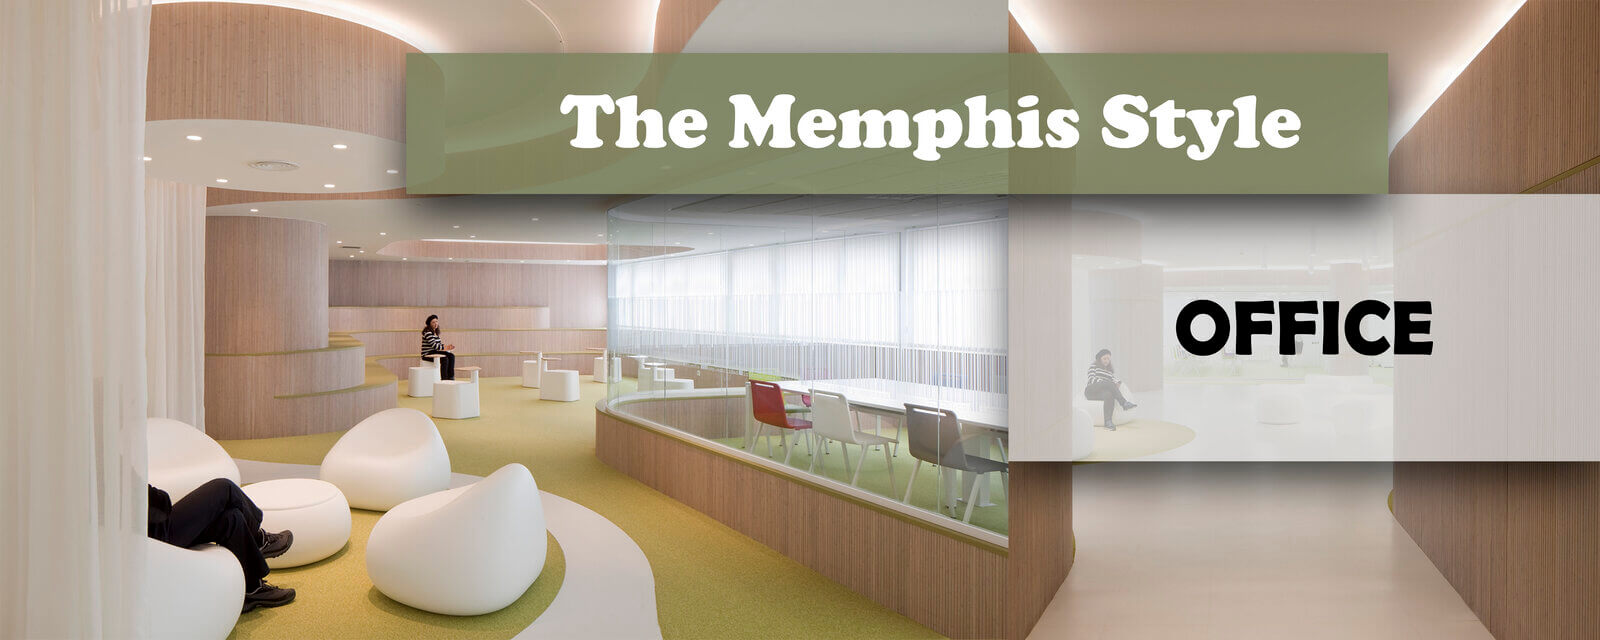 The Memphis Style | Office